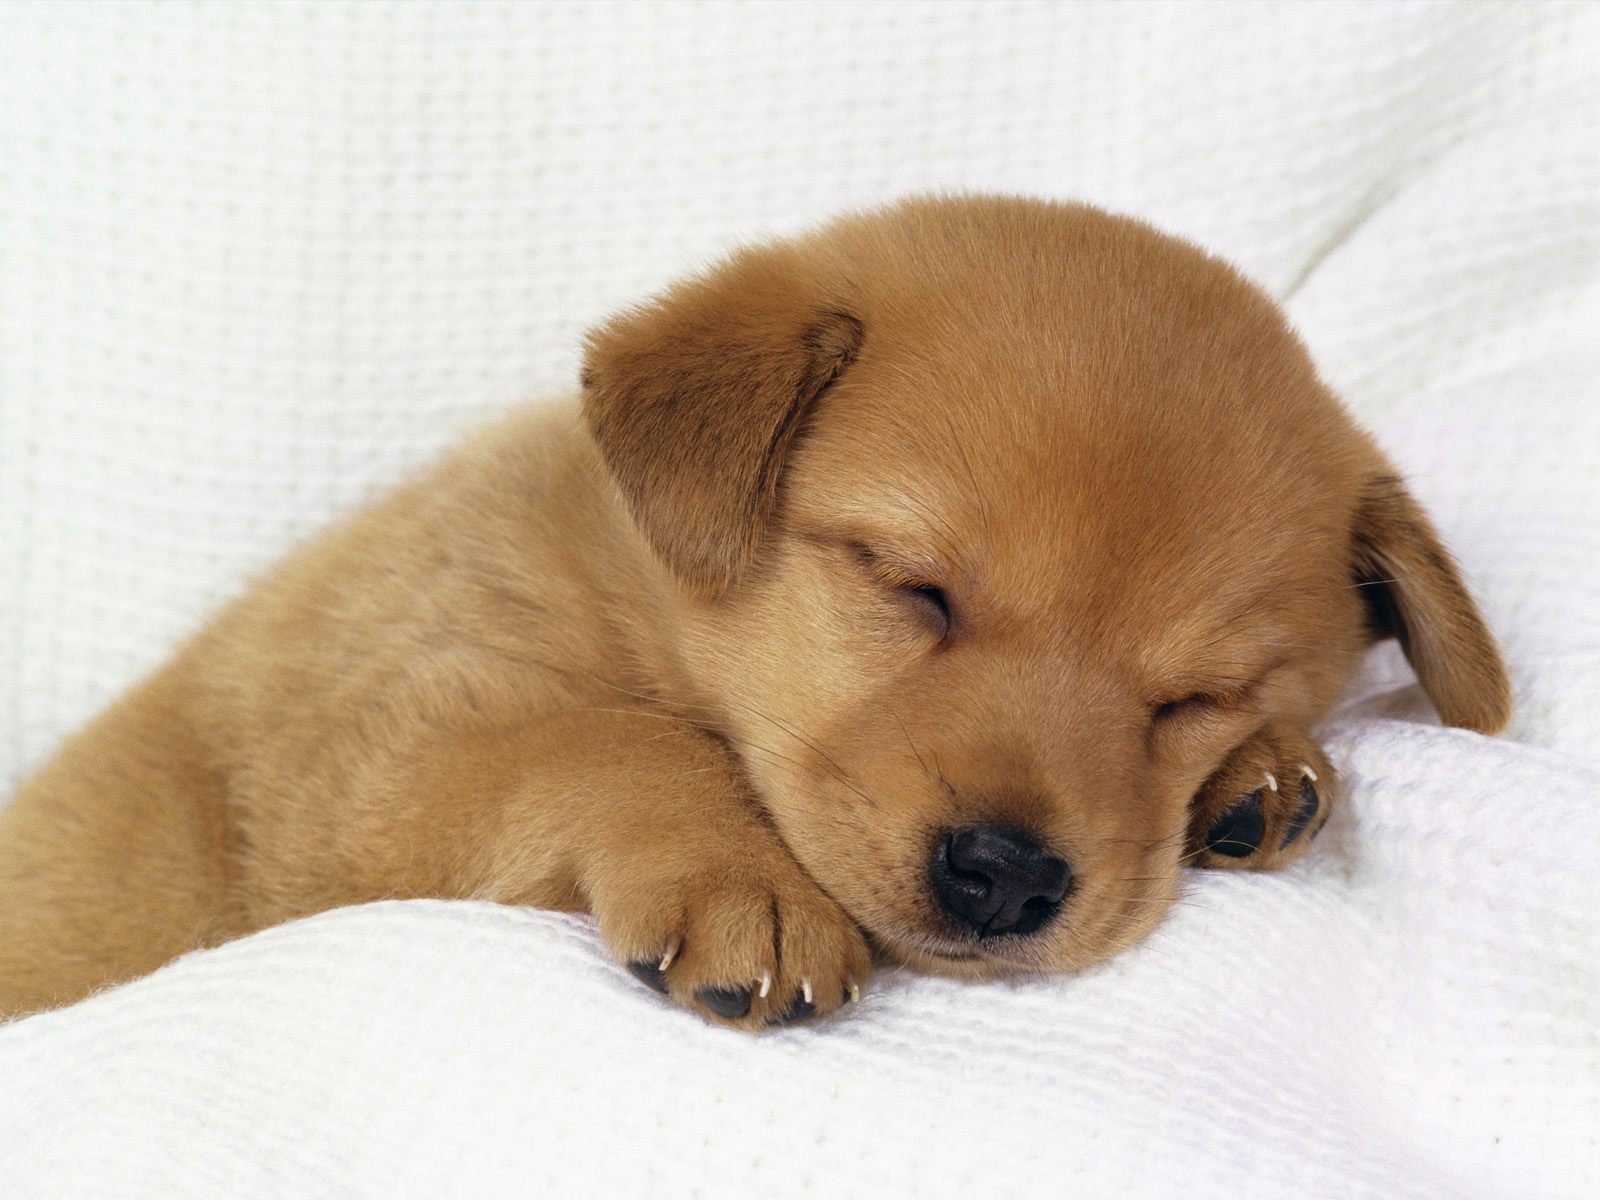 All Wallpapers Beautiful Dog Hd Wallpapers 1600x1200